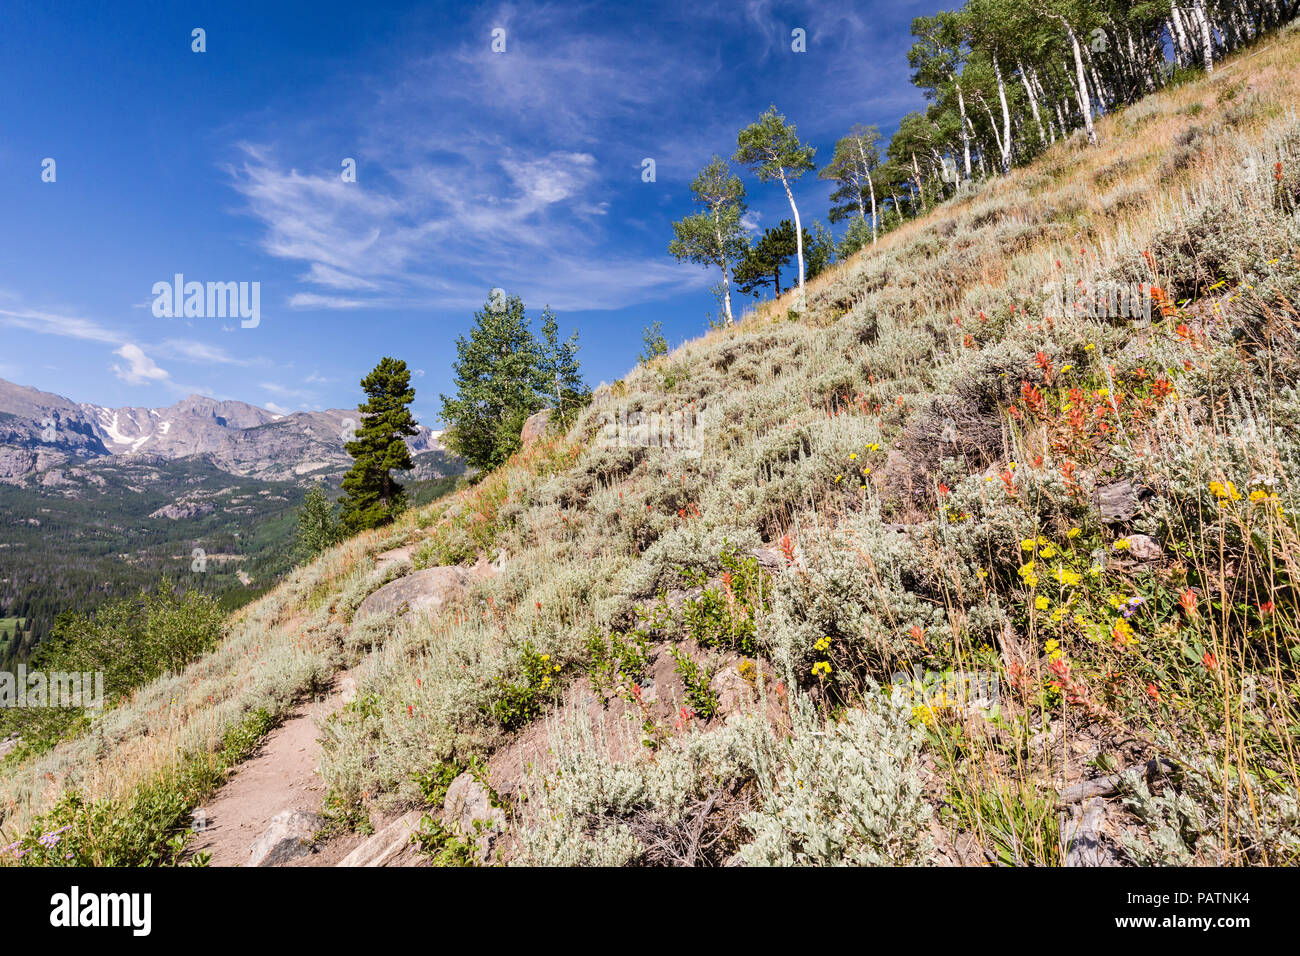 Indian Paintbrush wildflowers line the steep mountainside on Bierstadt Moraine, overlooking the Continental Divide in Rocky Mountain National Park, Co - Stock Image